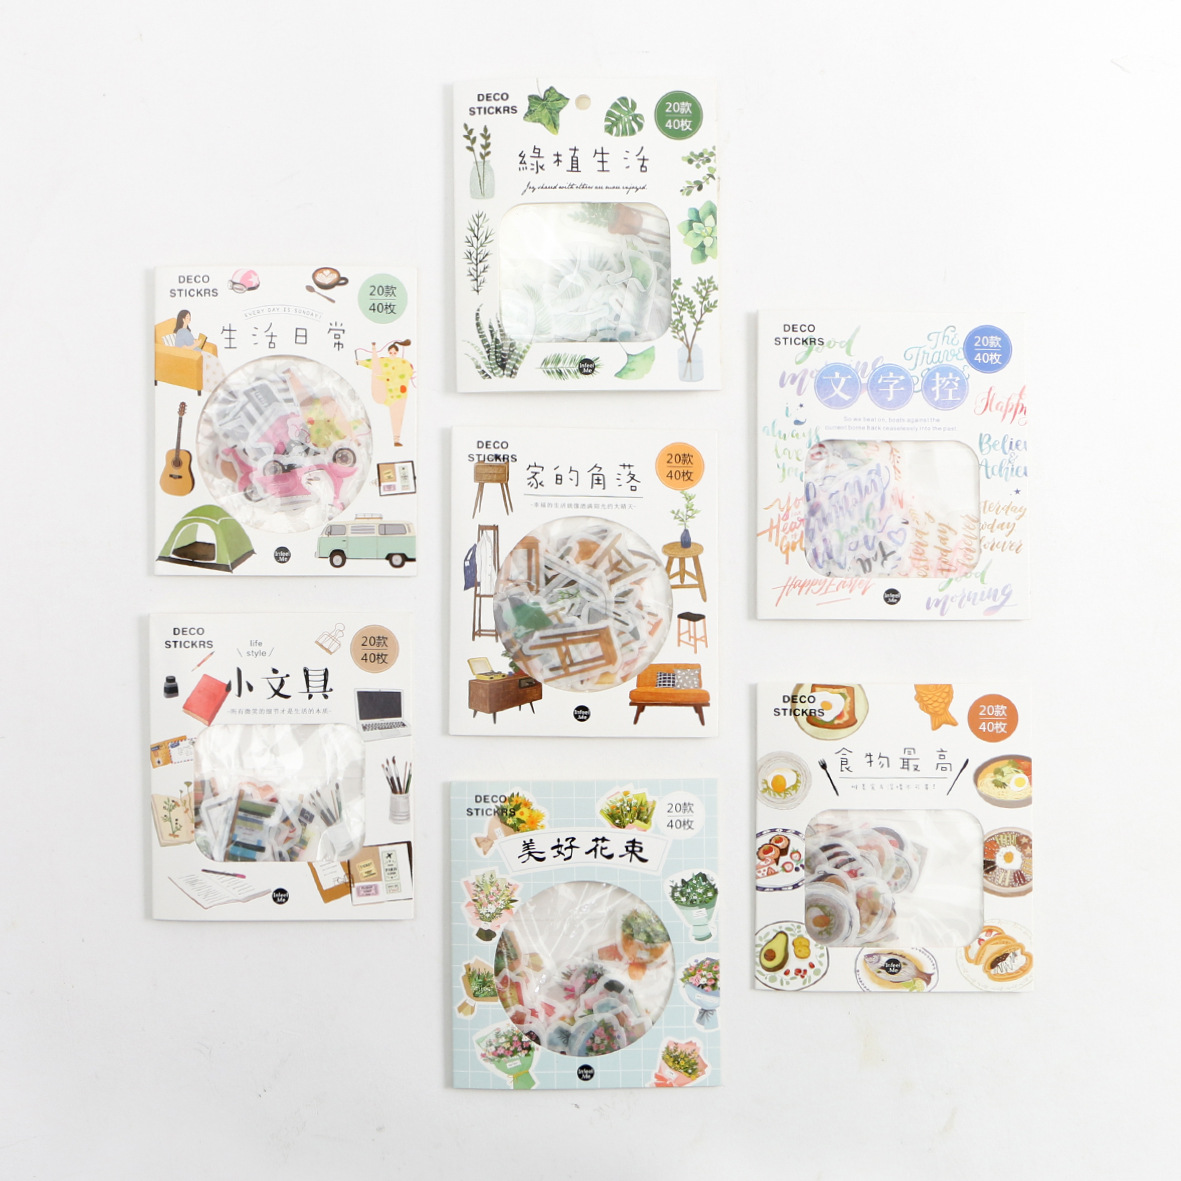 Furniture Plant Letter Stickers Set Decorative Stationery Stickers Scrapbooking DIY Diary Album Stick Lable